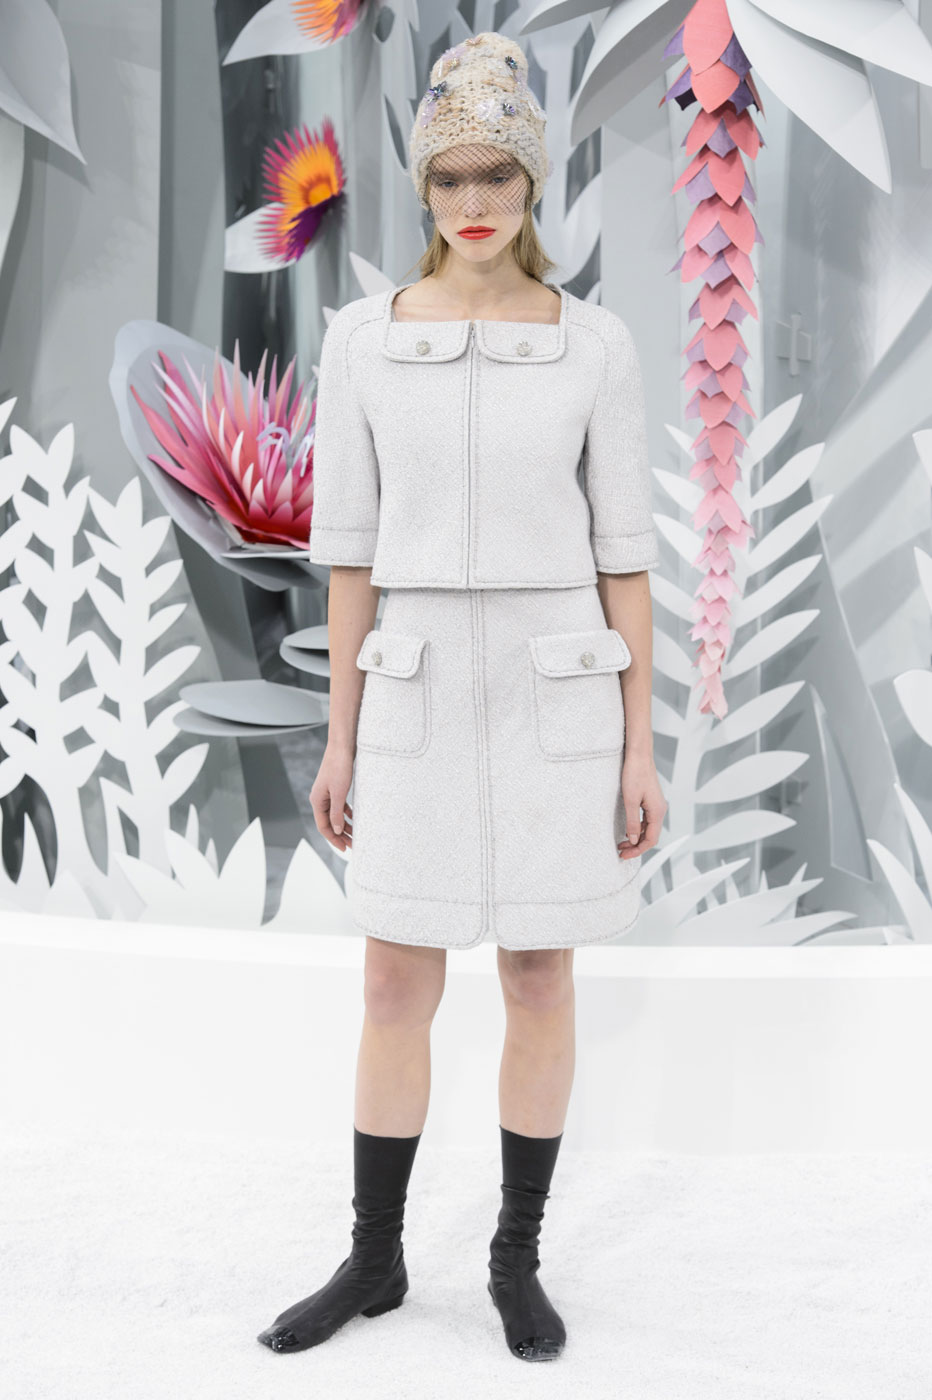 Chanel-fashion-runway-show-haute-couture-paris-spring-summer-2015-the-impression-021